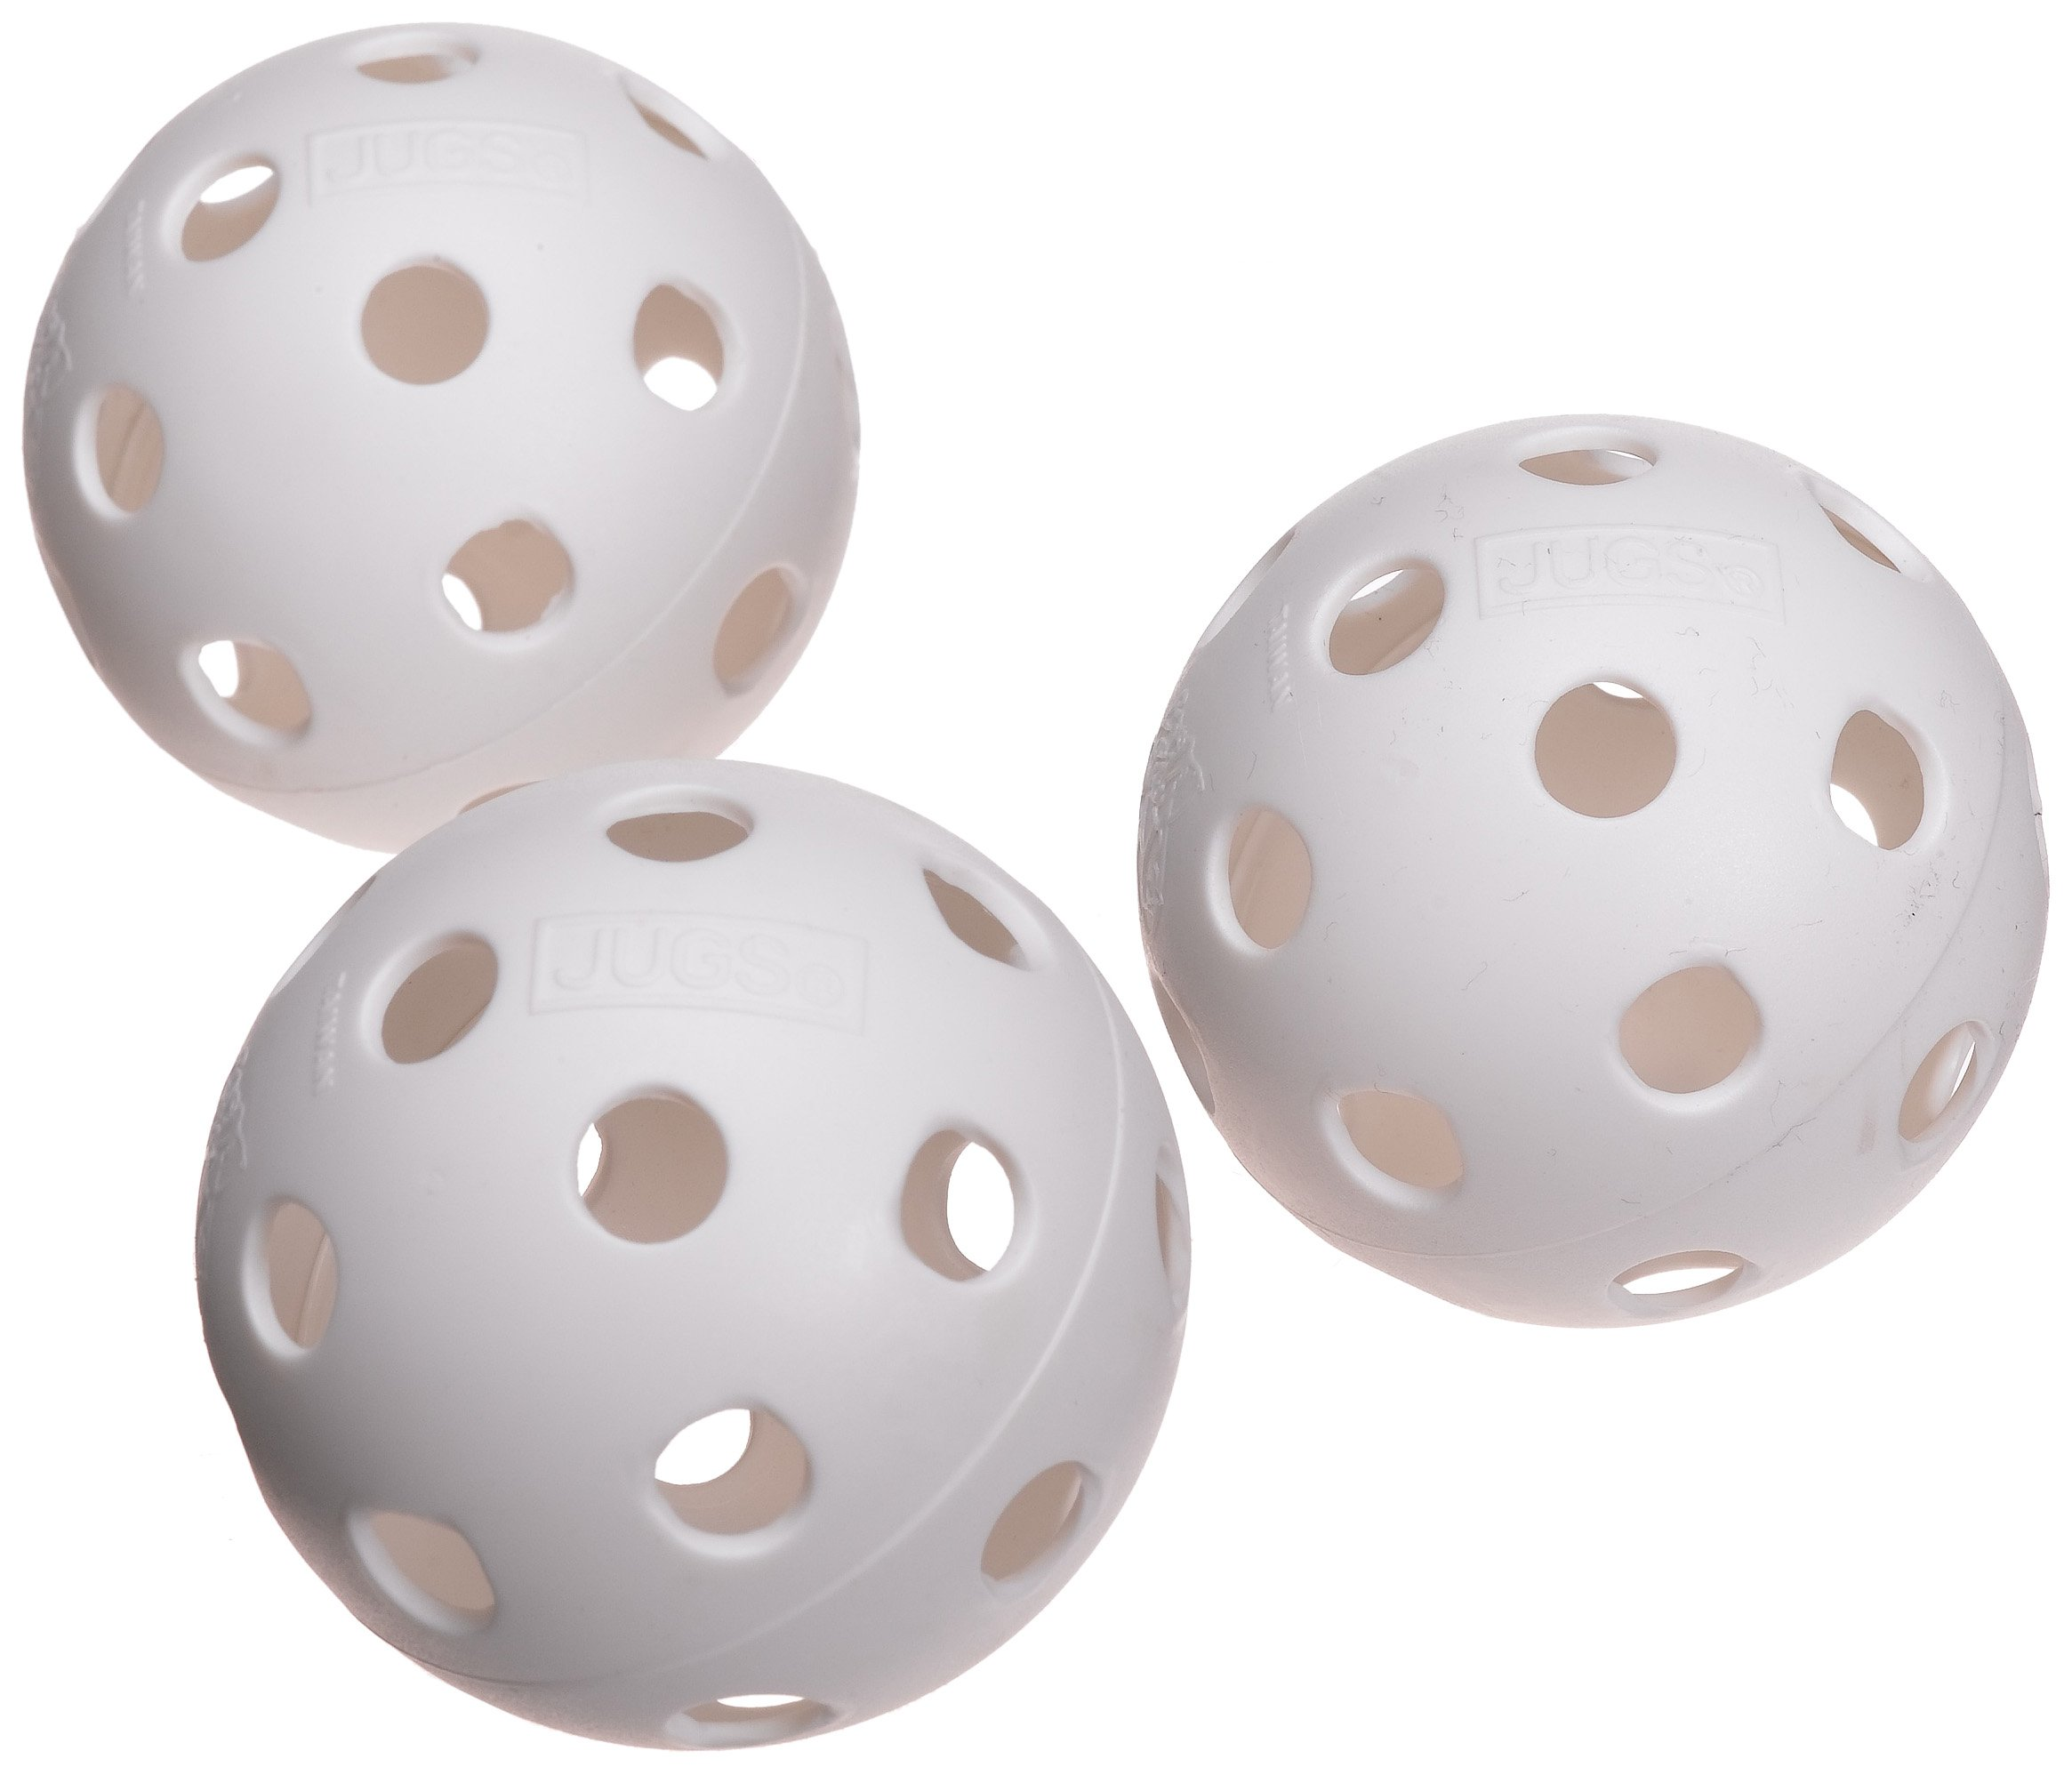 Jugs White Poly Baseballs (One Dozen)